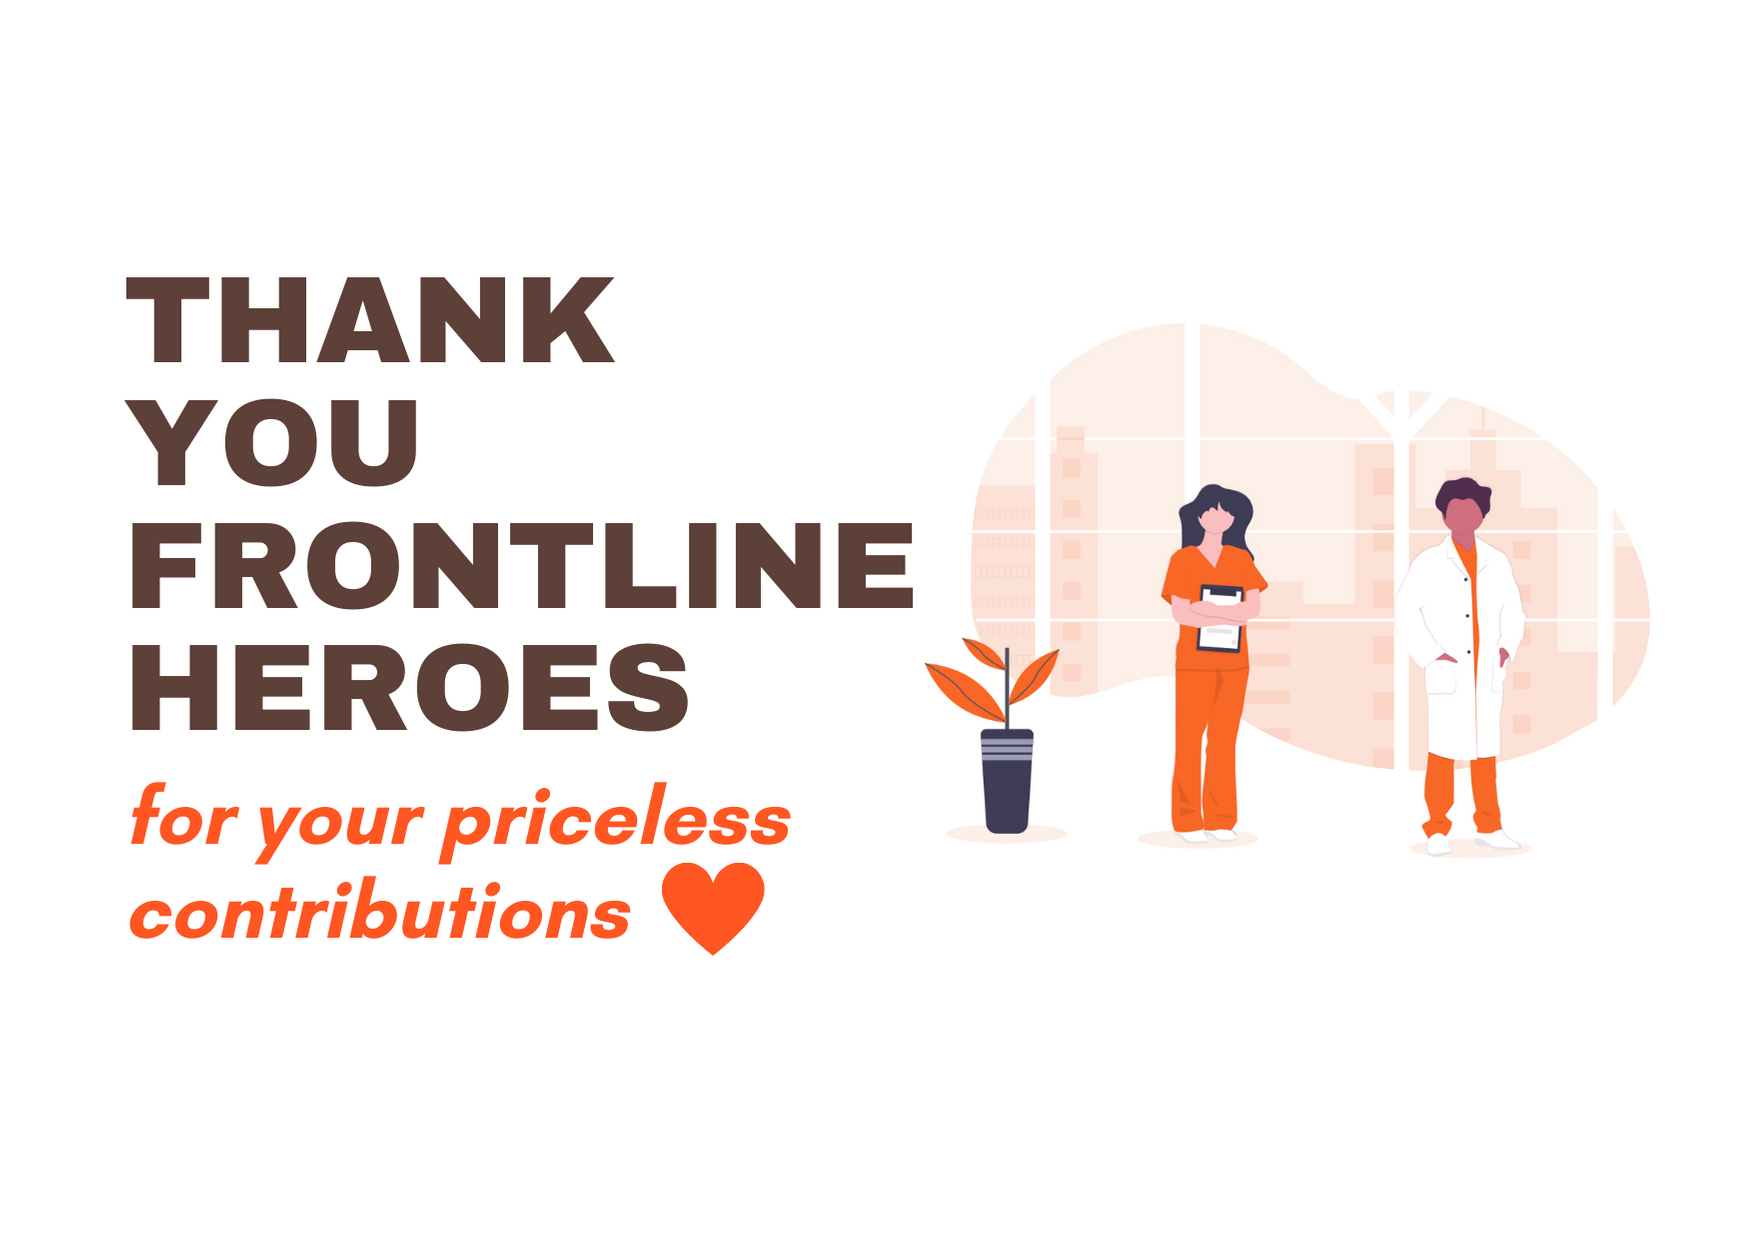 Cudoo offers 800+ Online Courses for Free to All Frontline Heroes